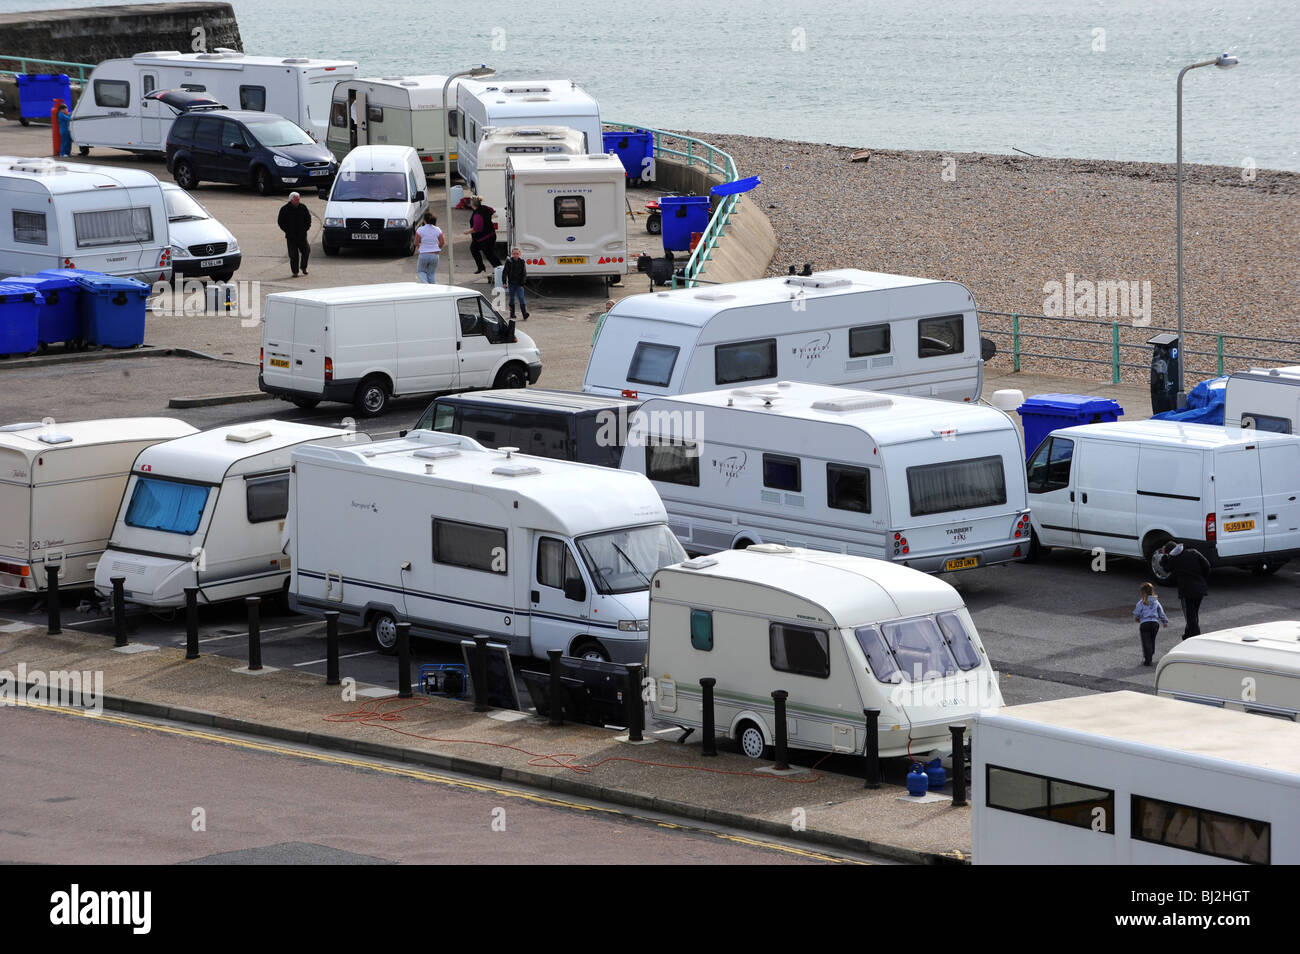 Travellers set up an illegal camp on a public car park at black rock next to brighton marina - Stock Image